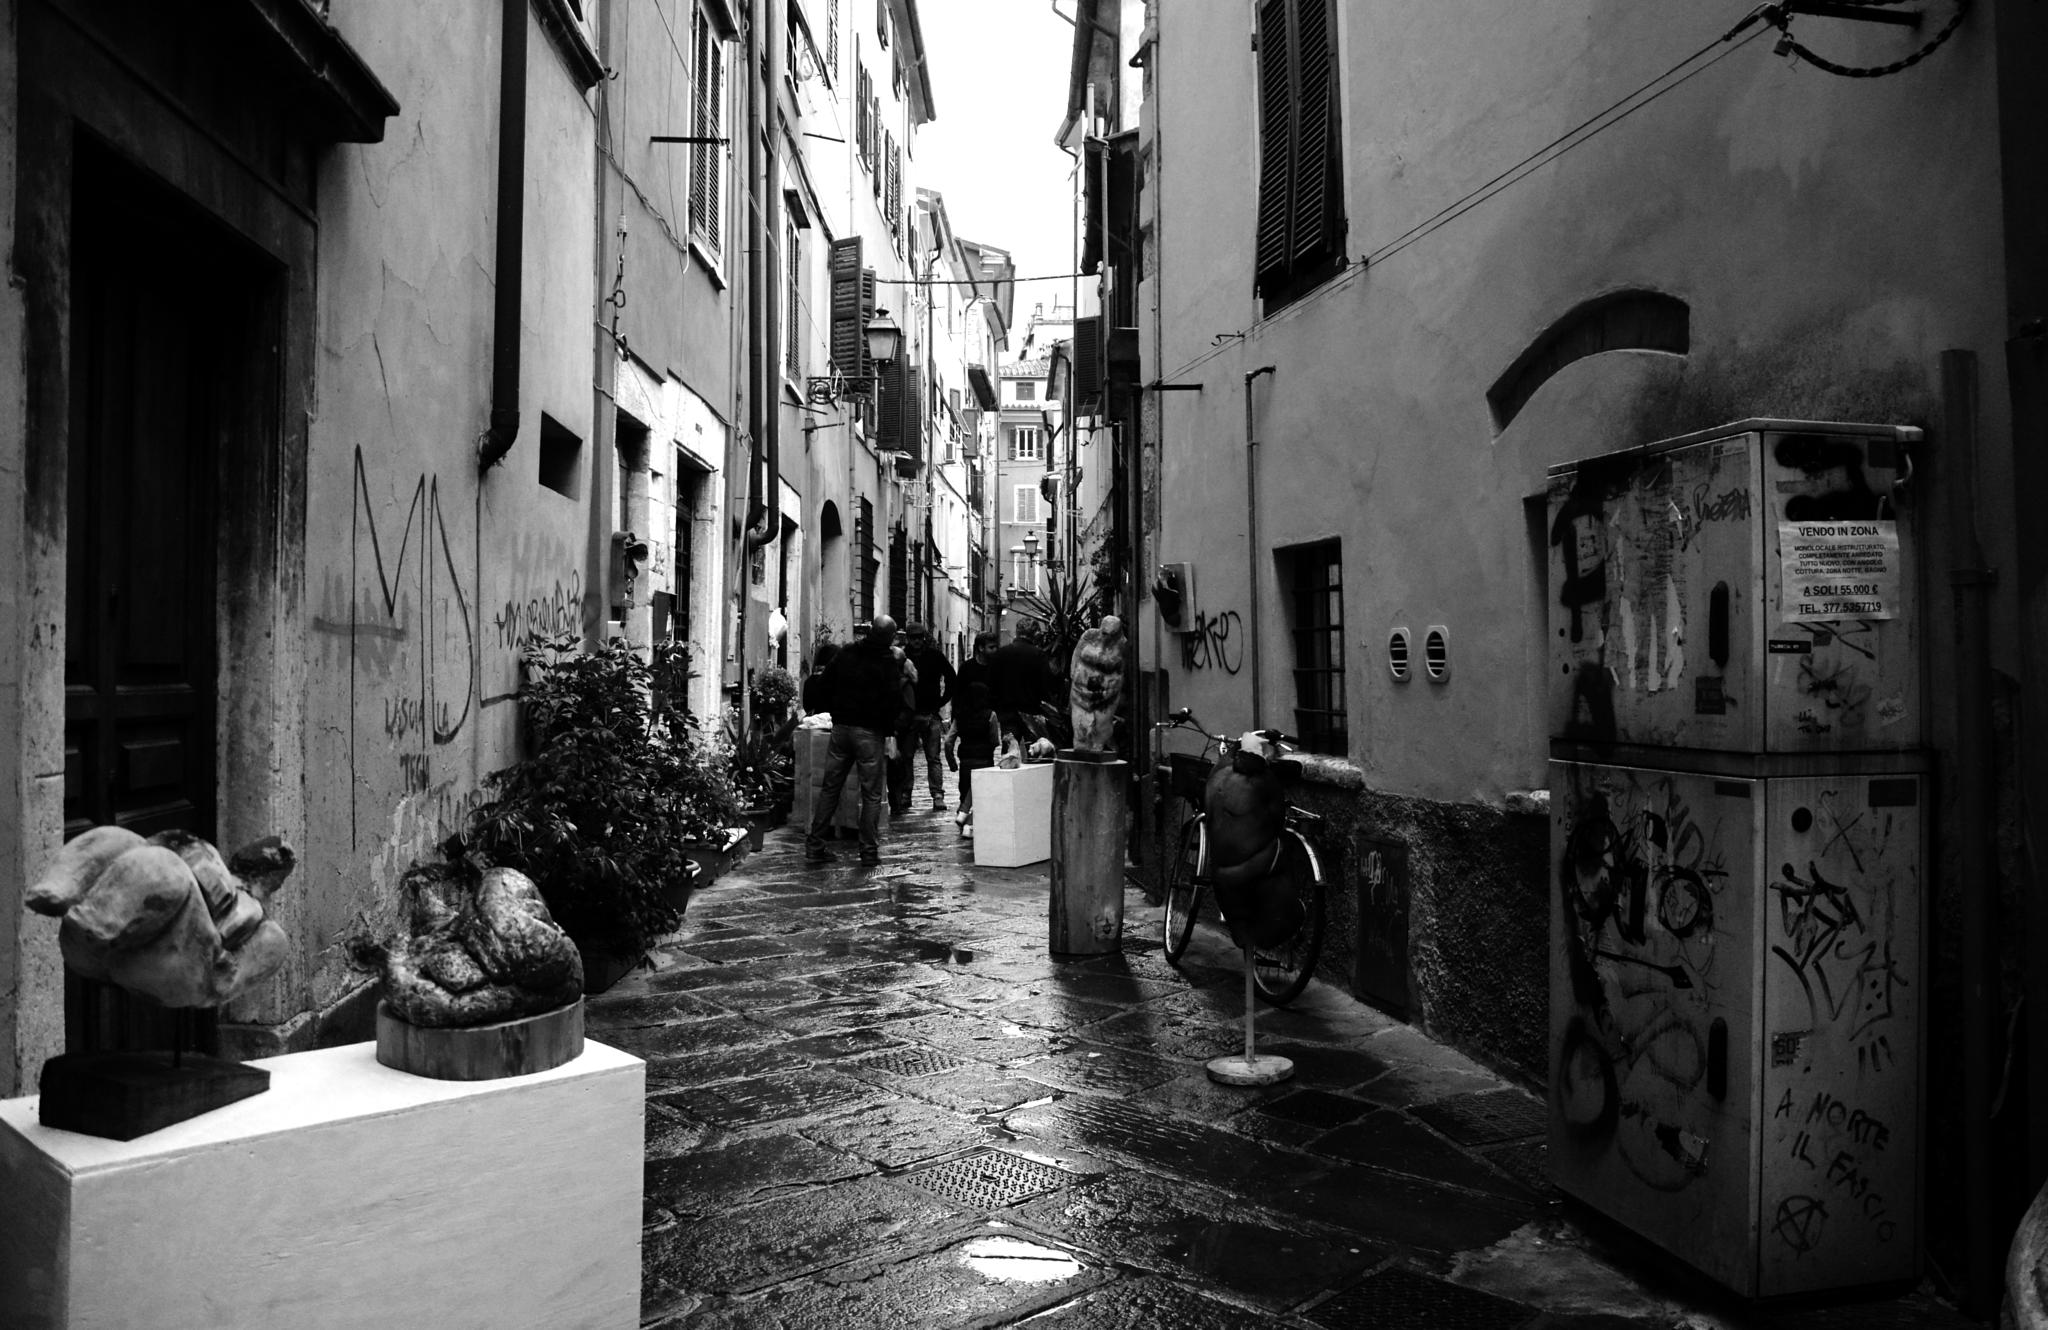 Untitled by ENRICA BIANCHI